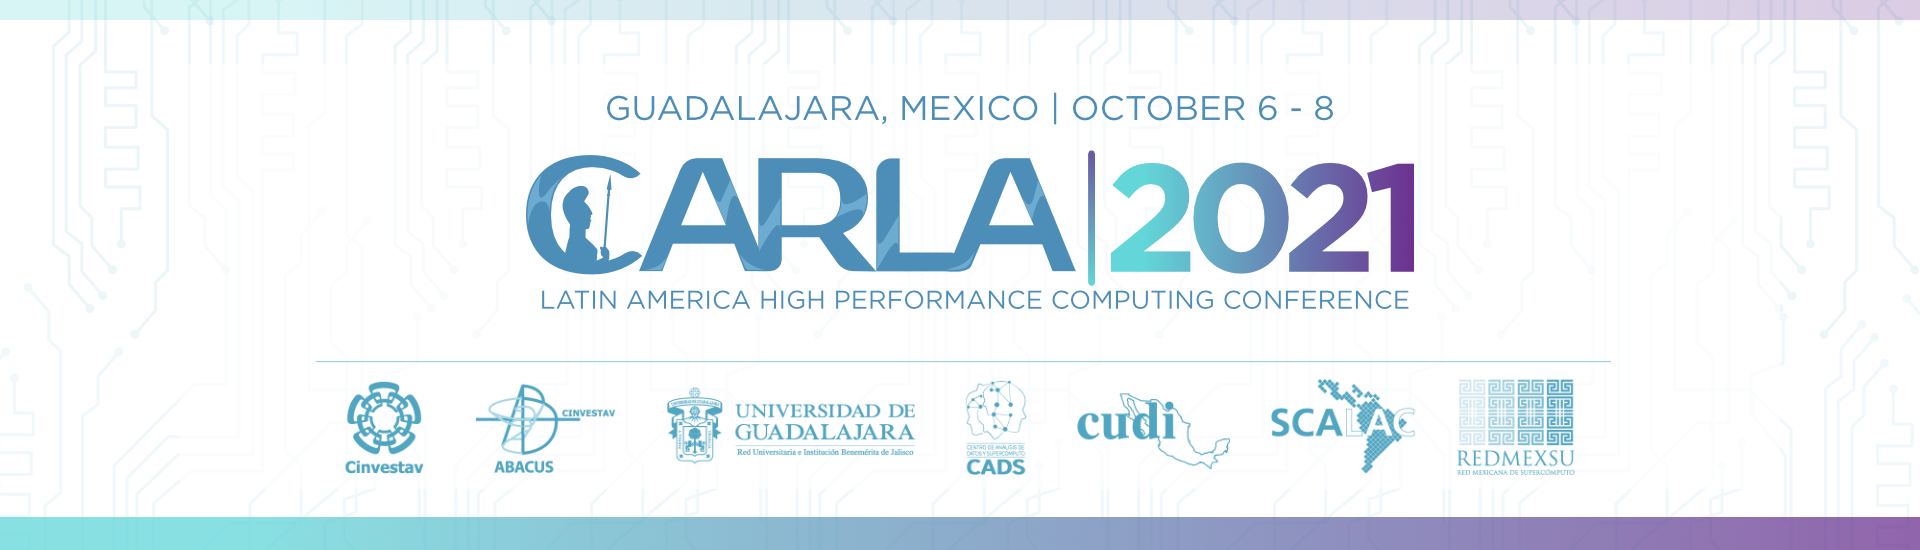 The Latin America High Performance Computing Conference comes to Mexico